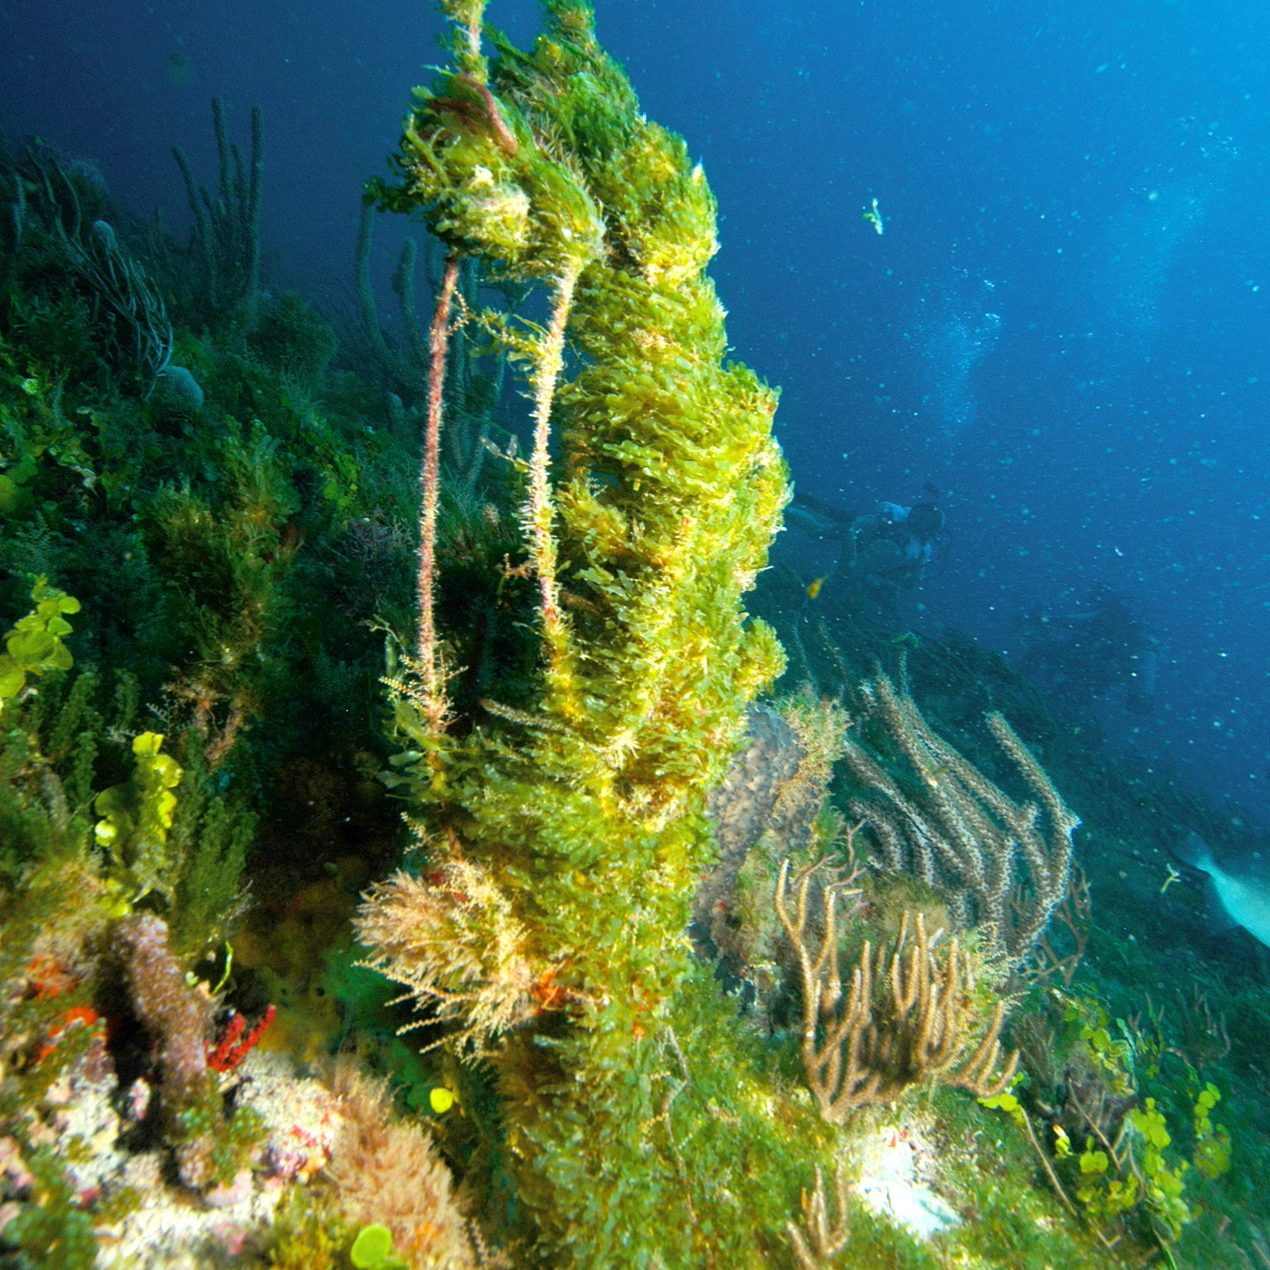 Expansive blooms of several <i>Caulerpa</i> spp. occurred off the Florida coast in 1997 and 2001